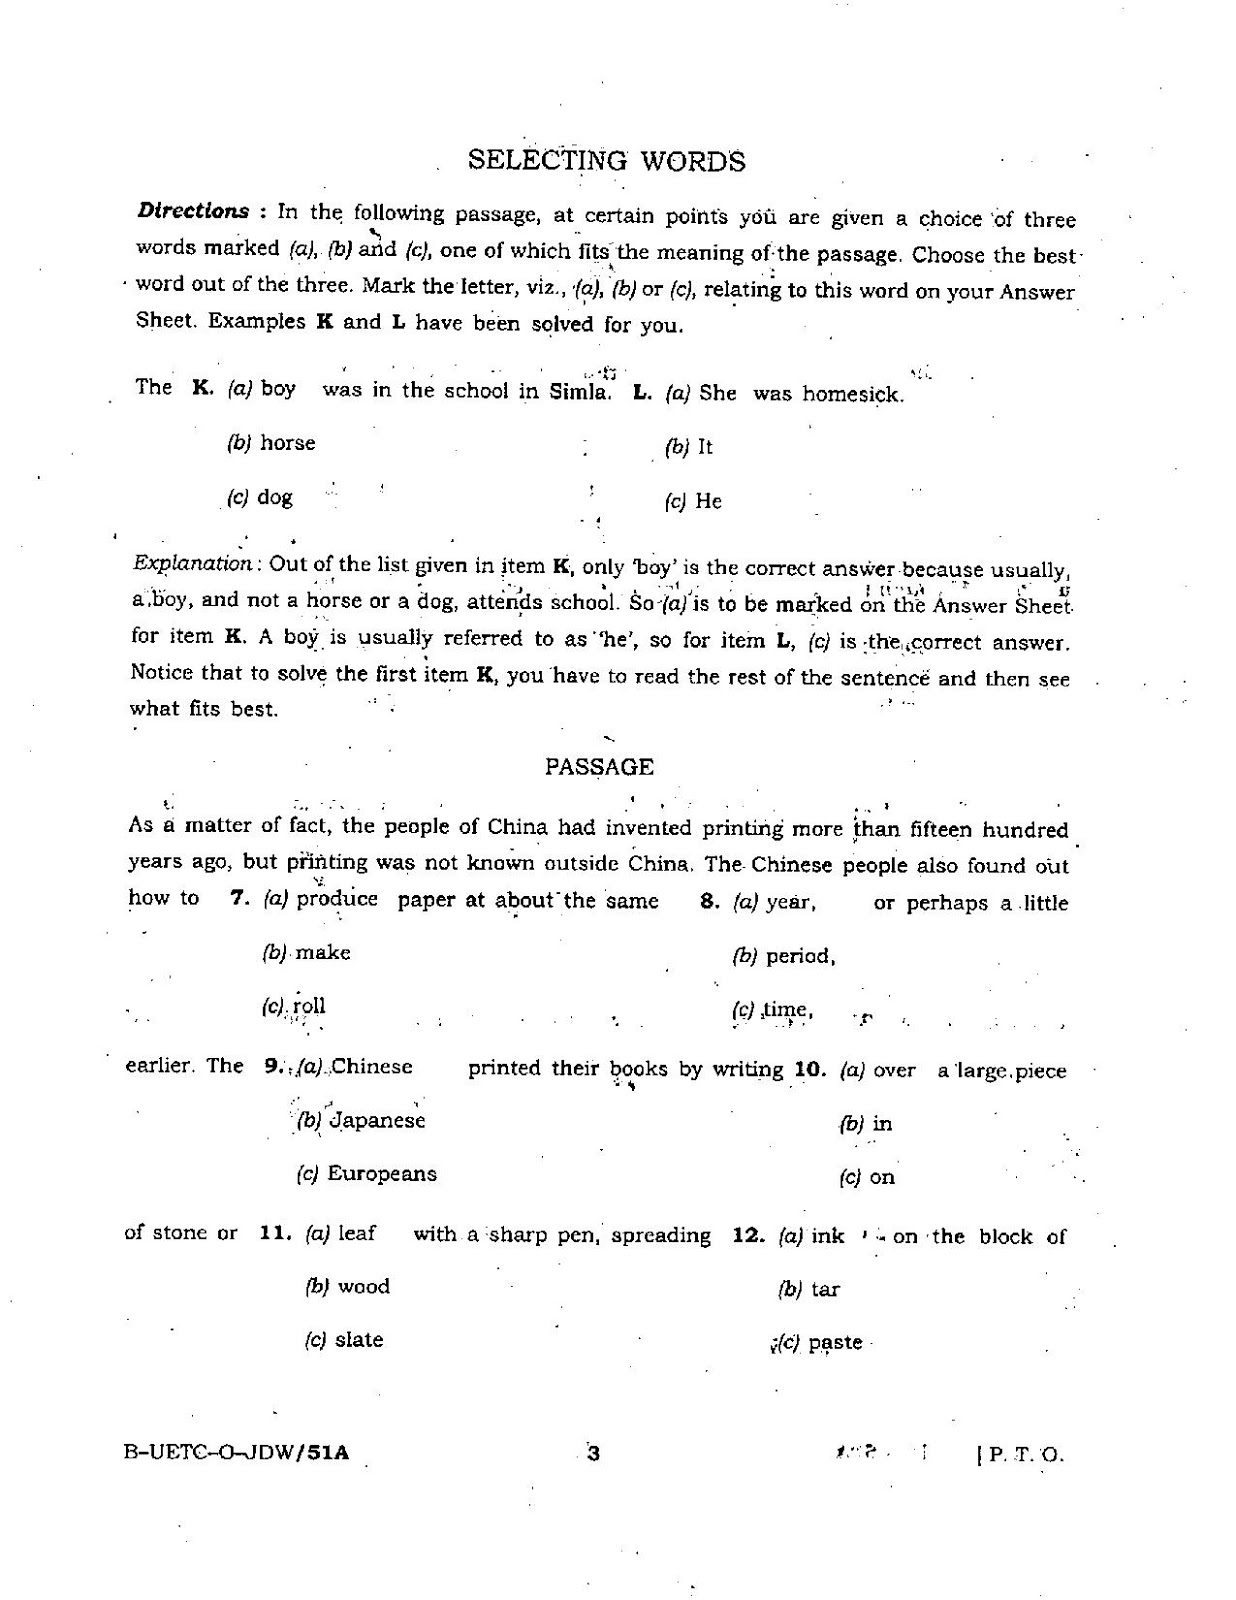 UPSC 2015 General Ability Test Question Paper